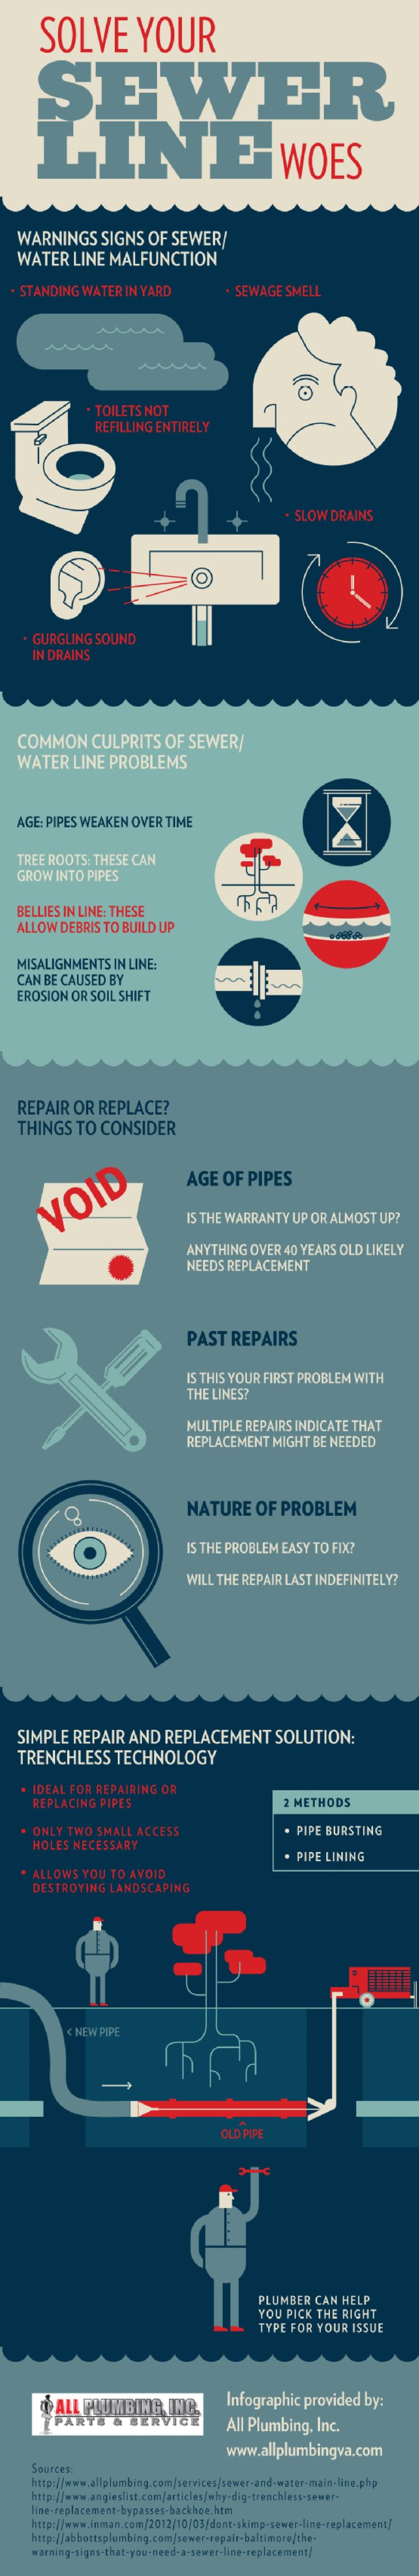 Solve Your Sewer Line Woes --shared by BrittSE on Aug 02, 2014